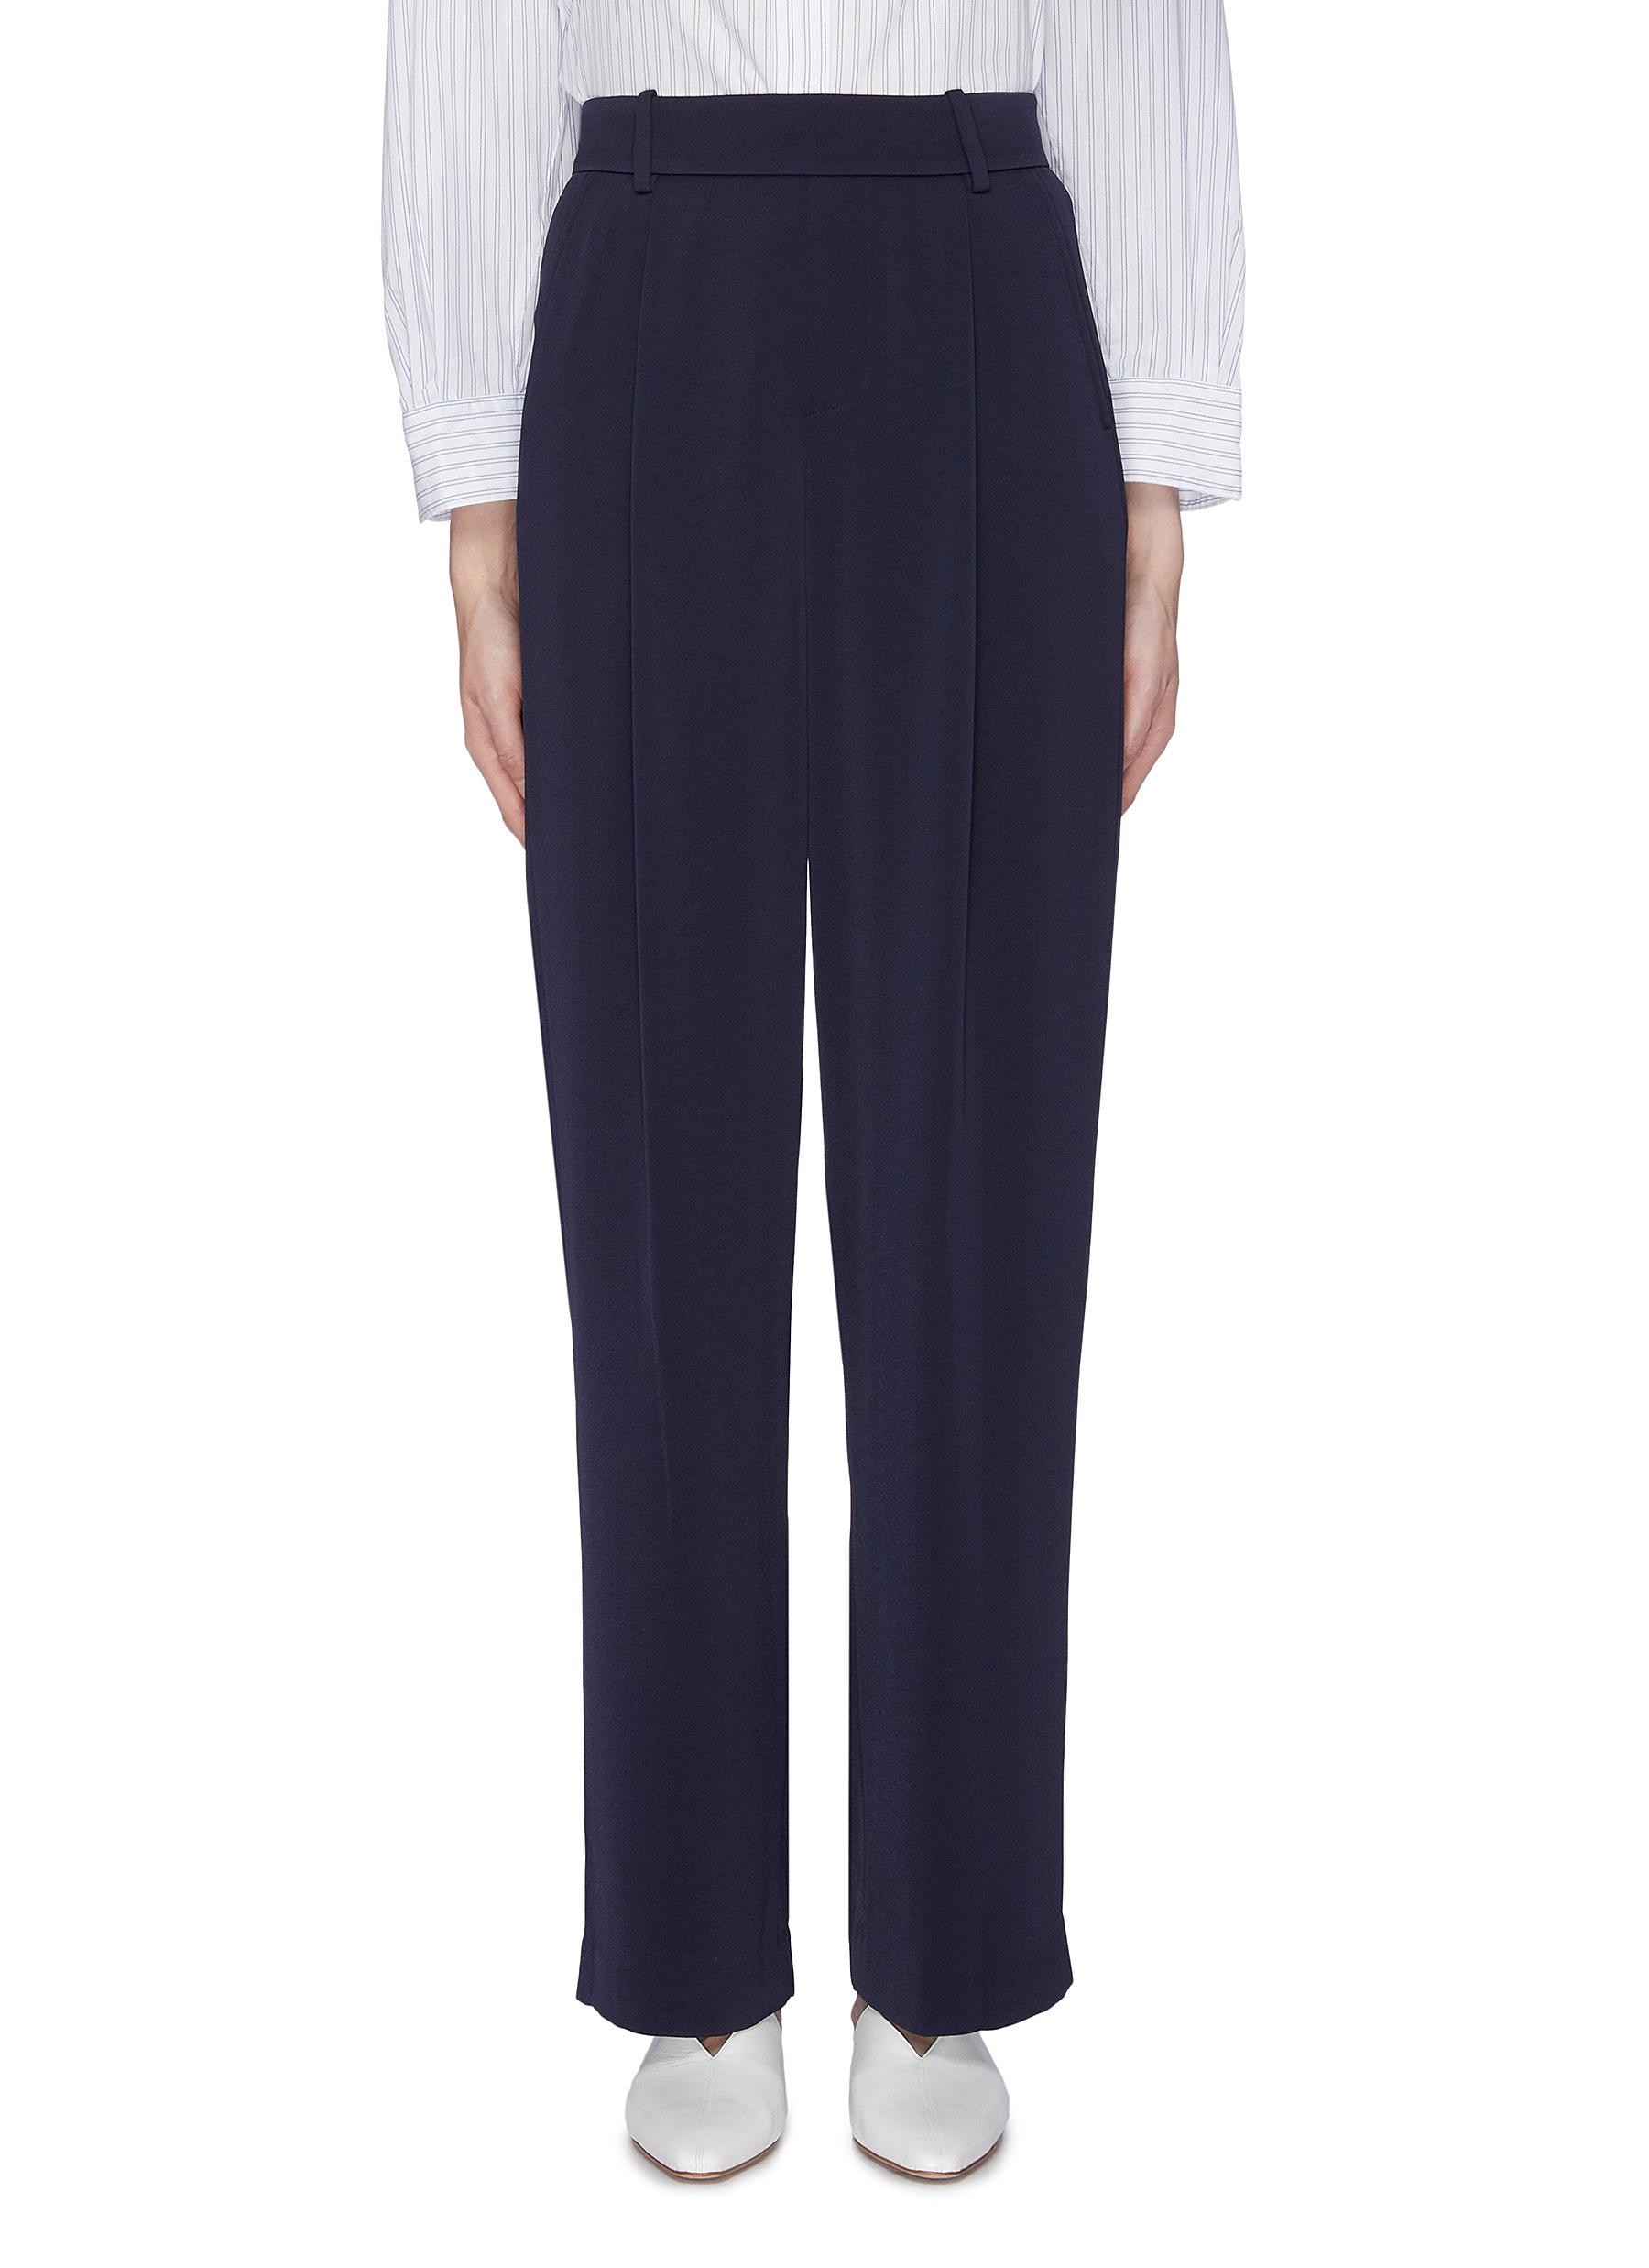 Pull On satin wide leg pants by Vince